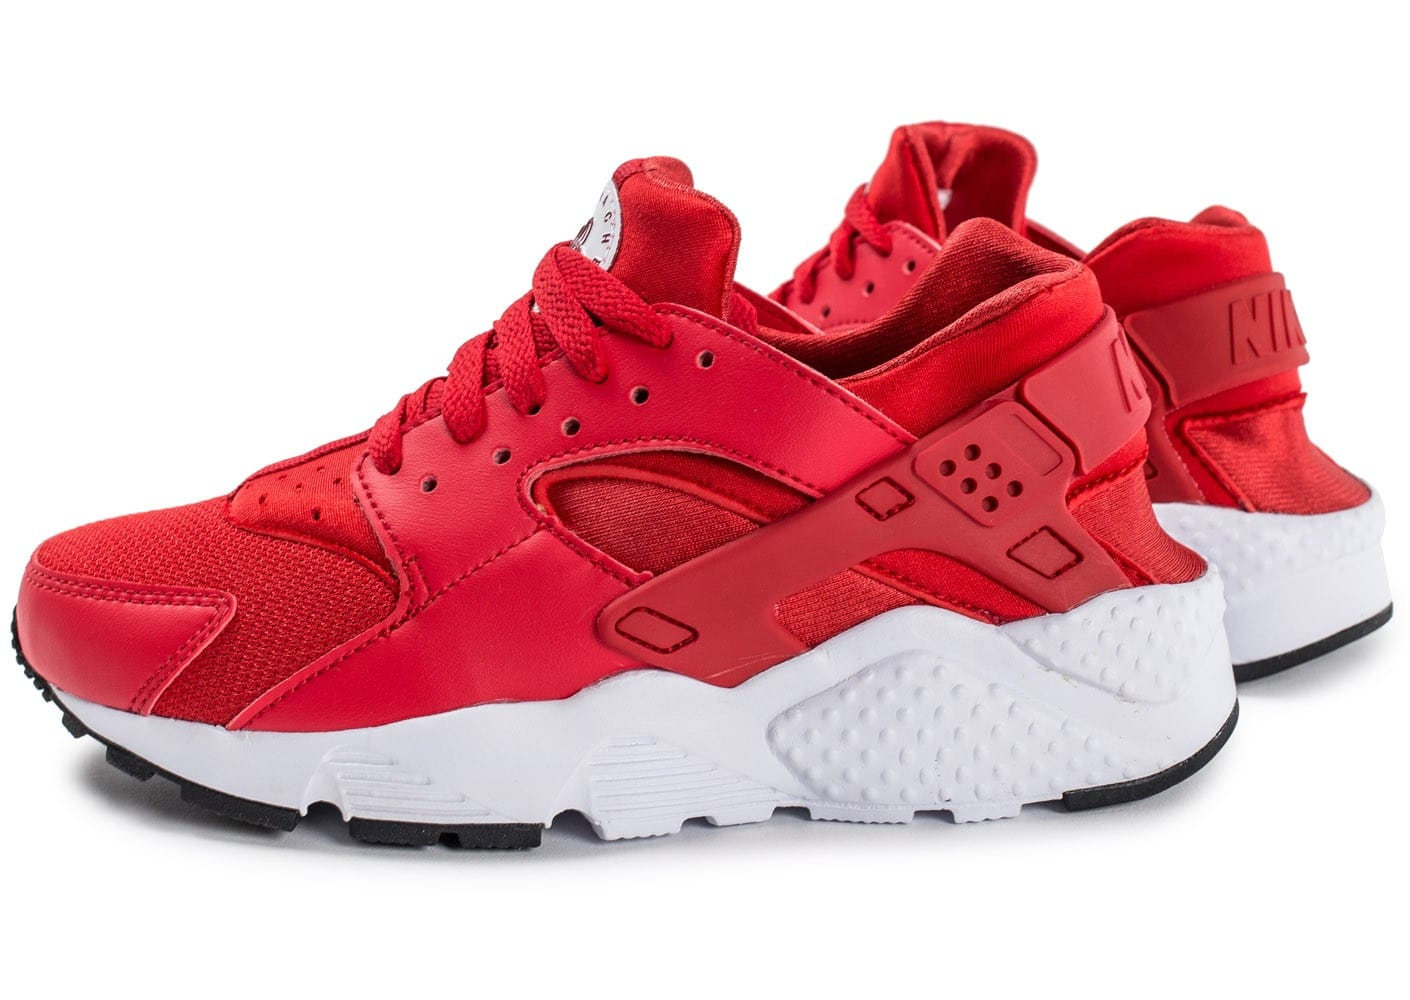 Nike Huarache Run Junior rouge - Chaussures Enfant - Chausport